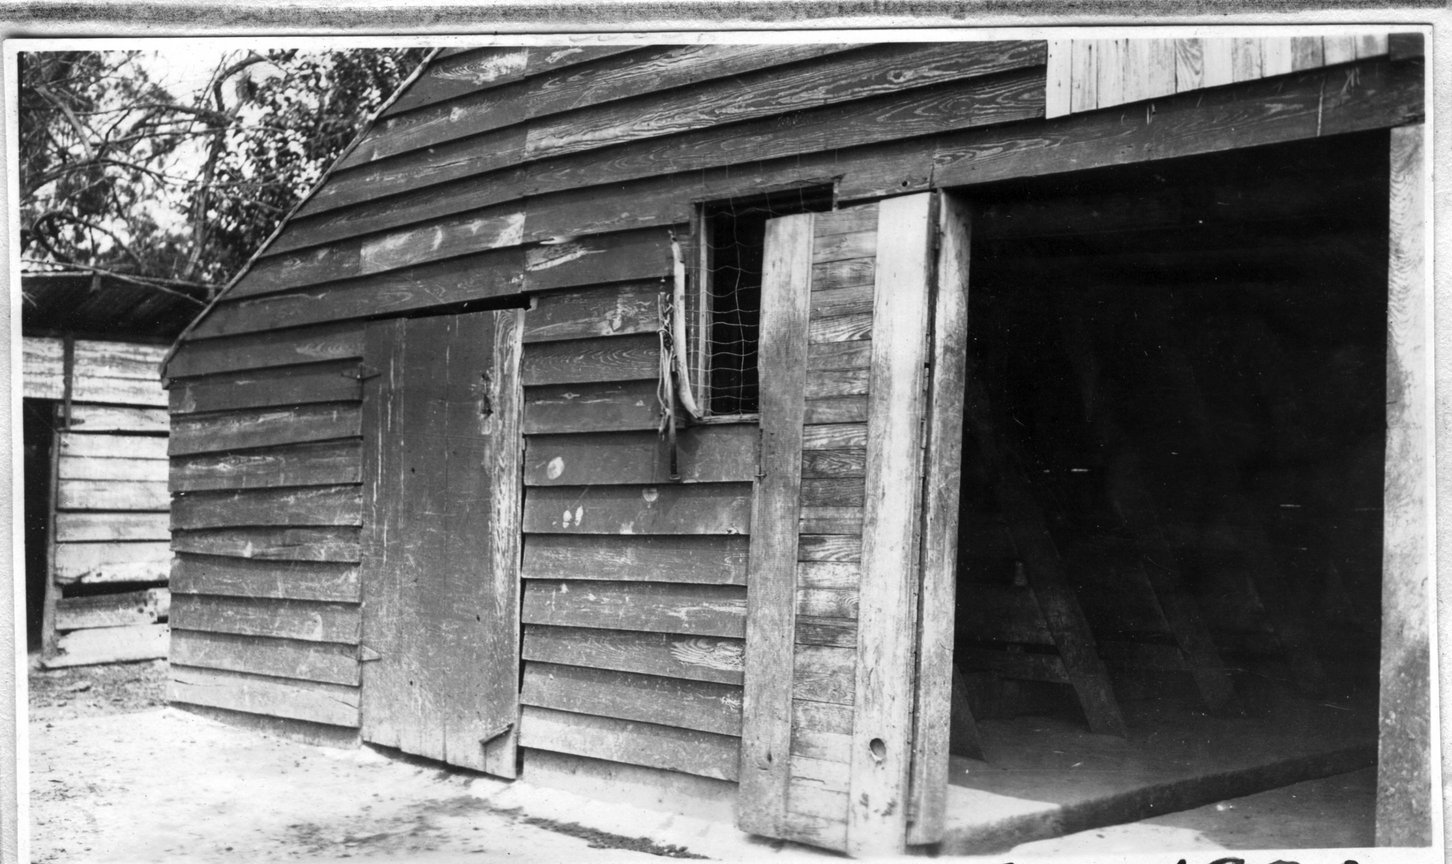 154~S. E. Kidd Barn Aug 1920.jpg